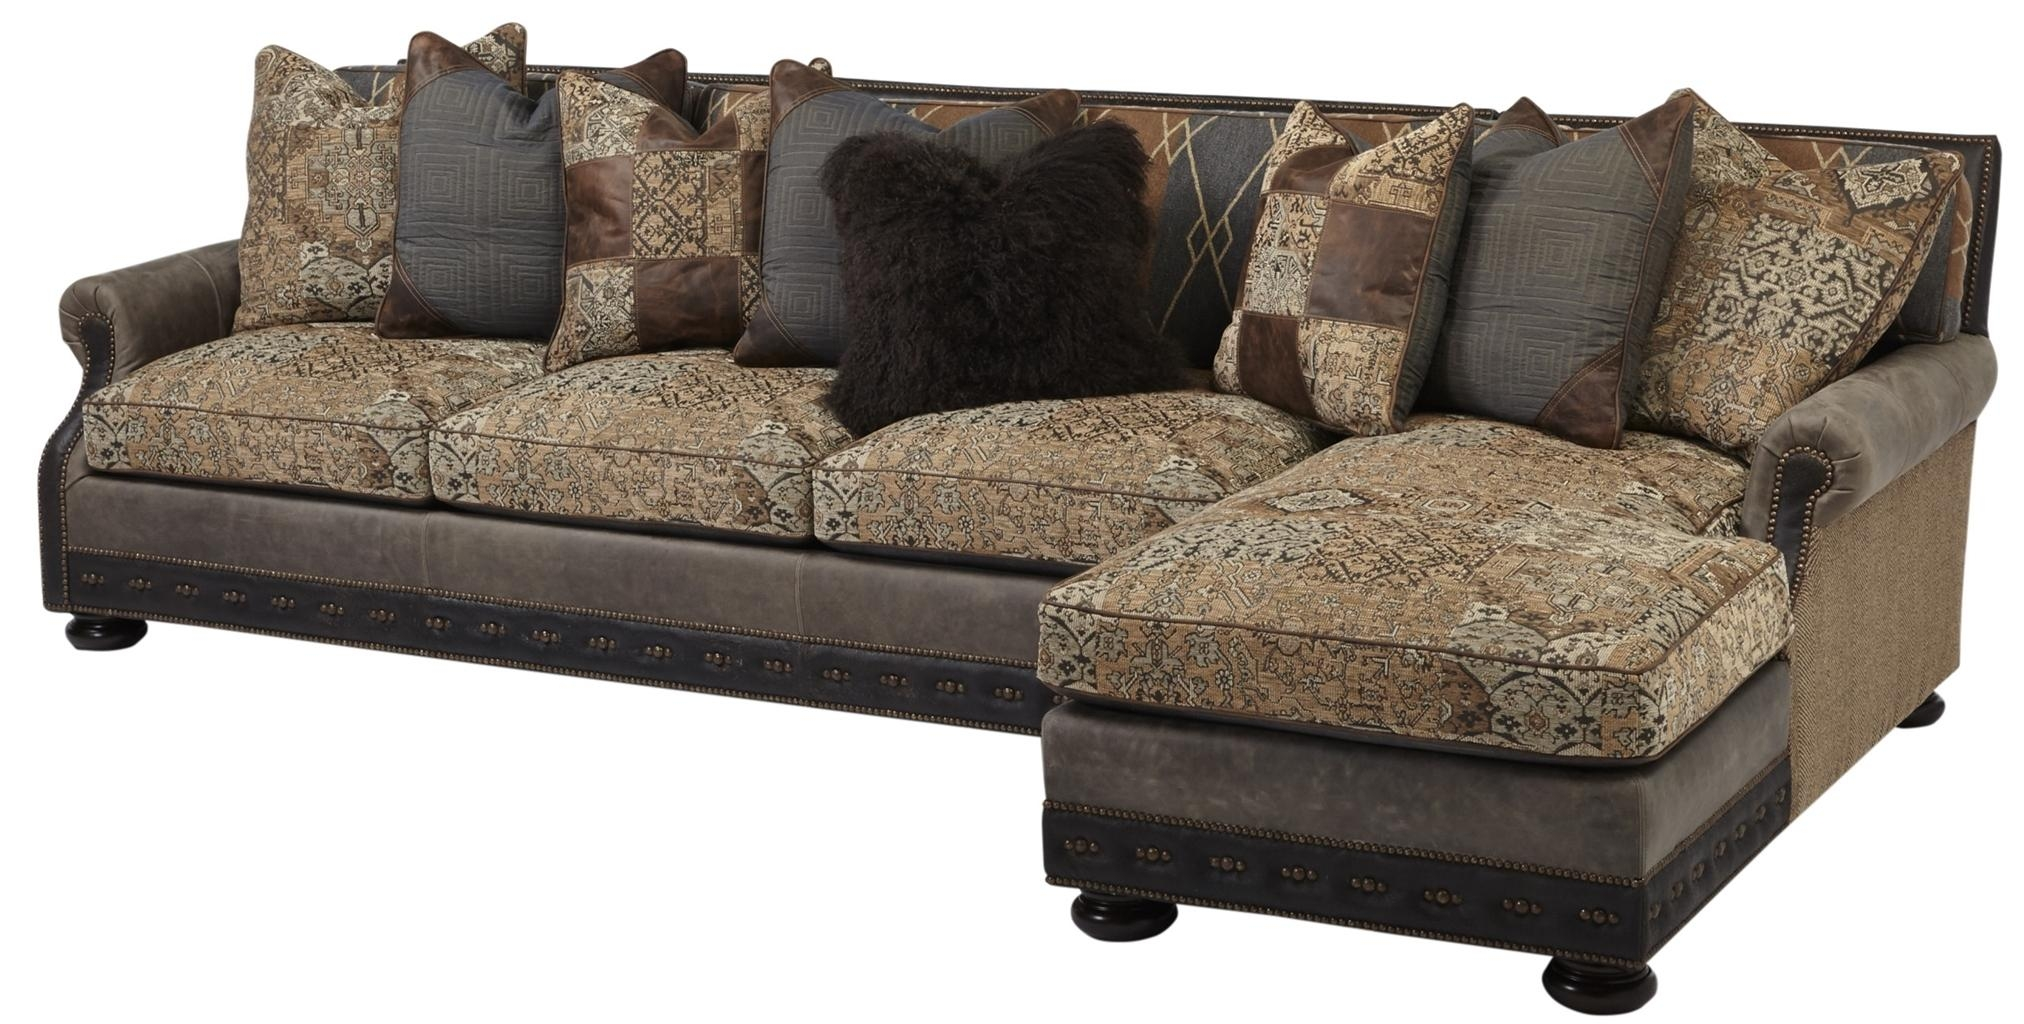 20 photos high end sofa sofa ideas for Chaise end sofas